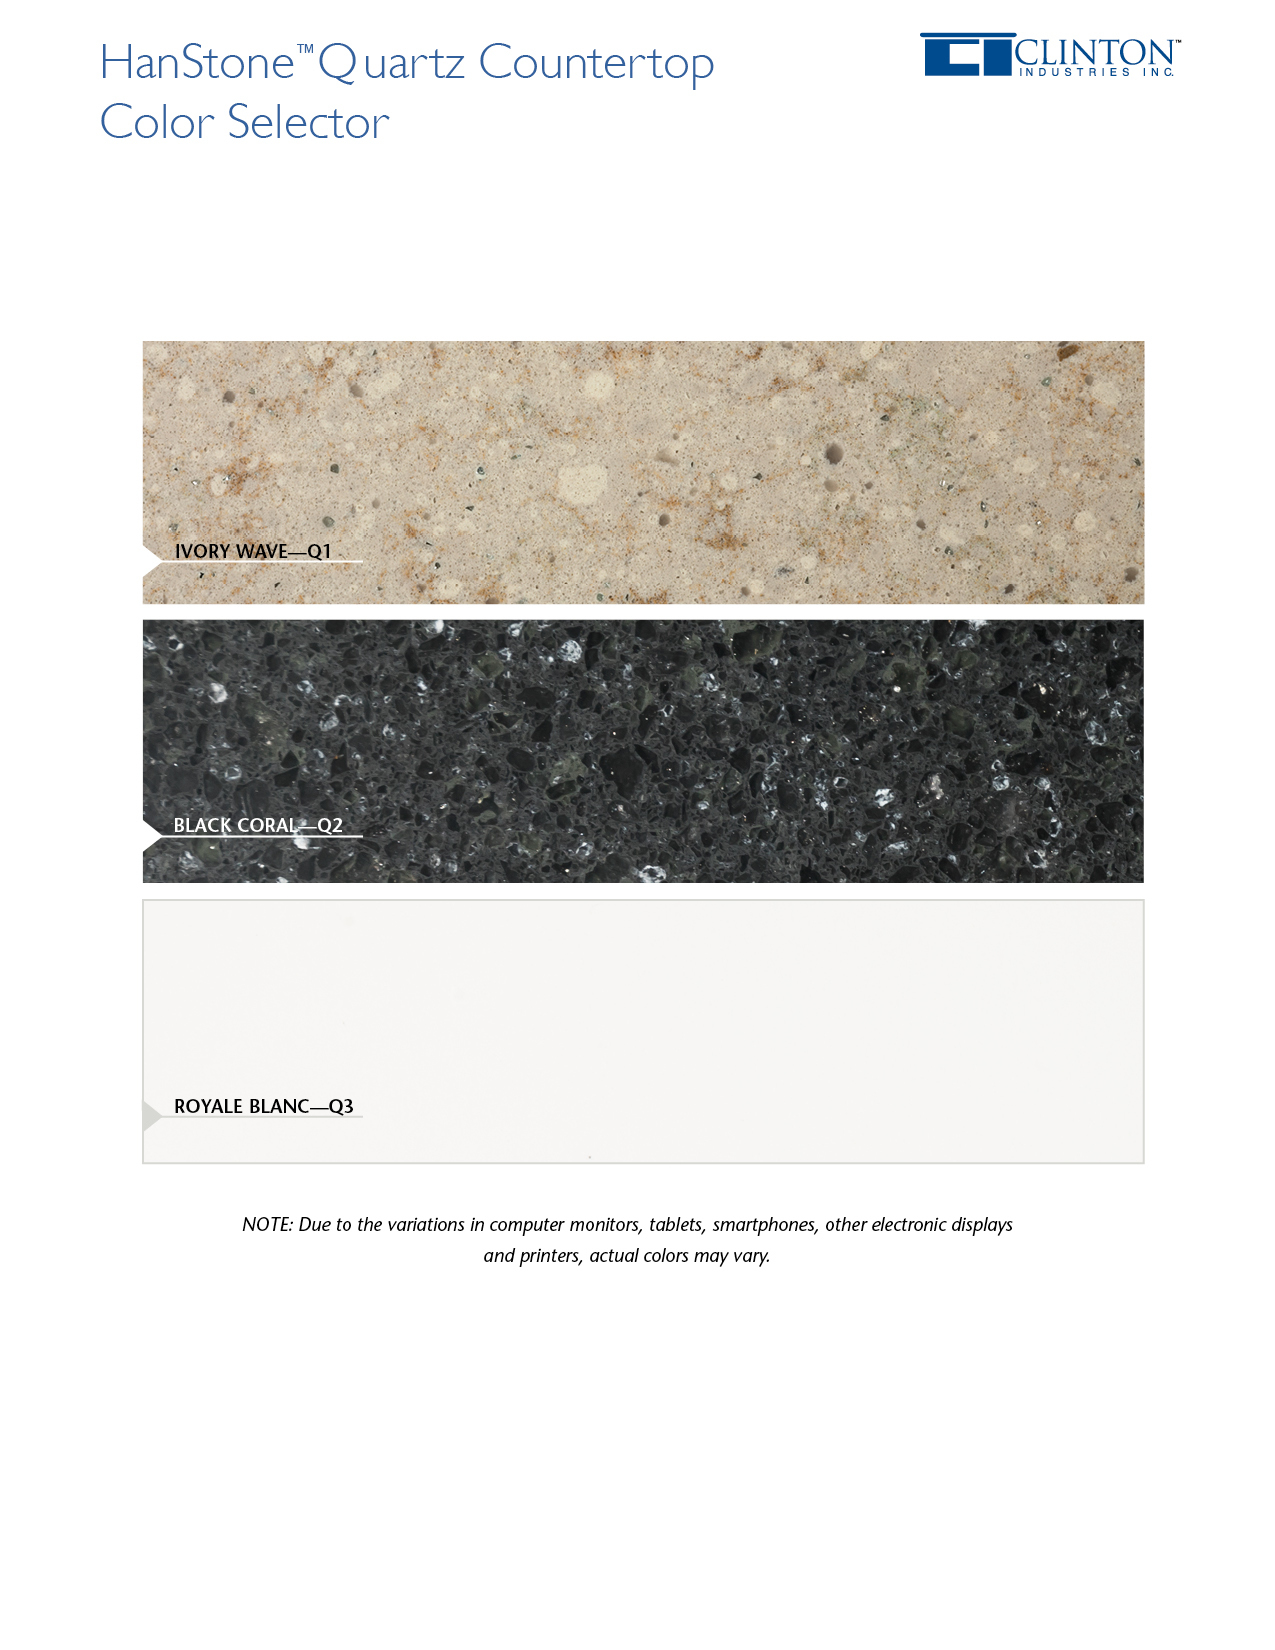 HanStone™ Quartz Countertop Color Selector